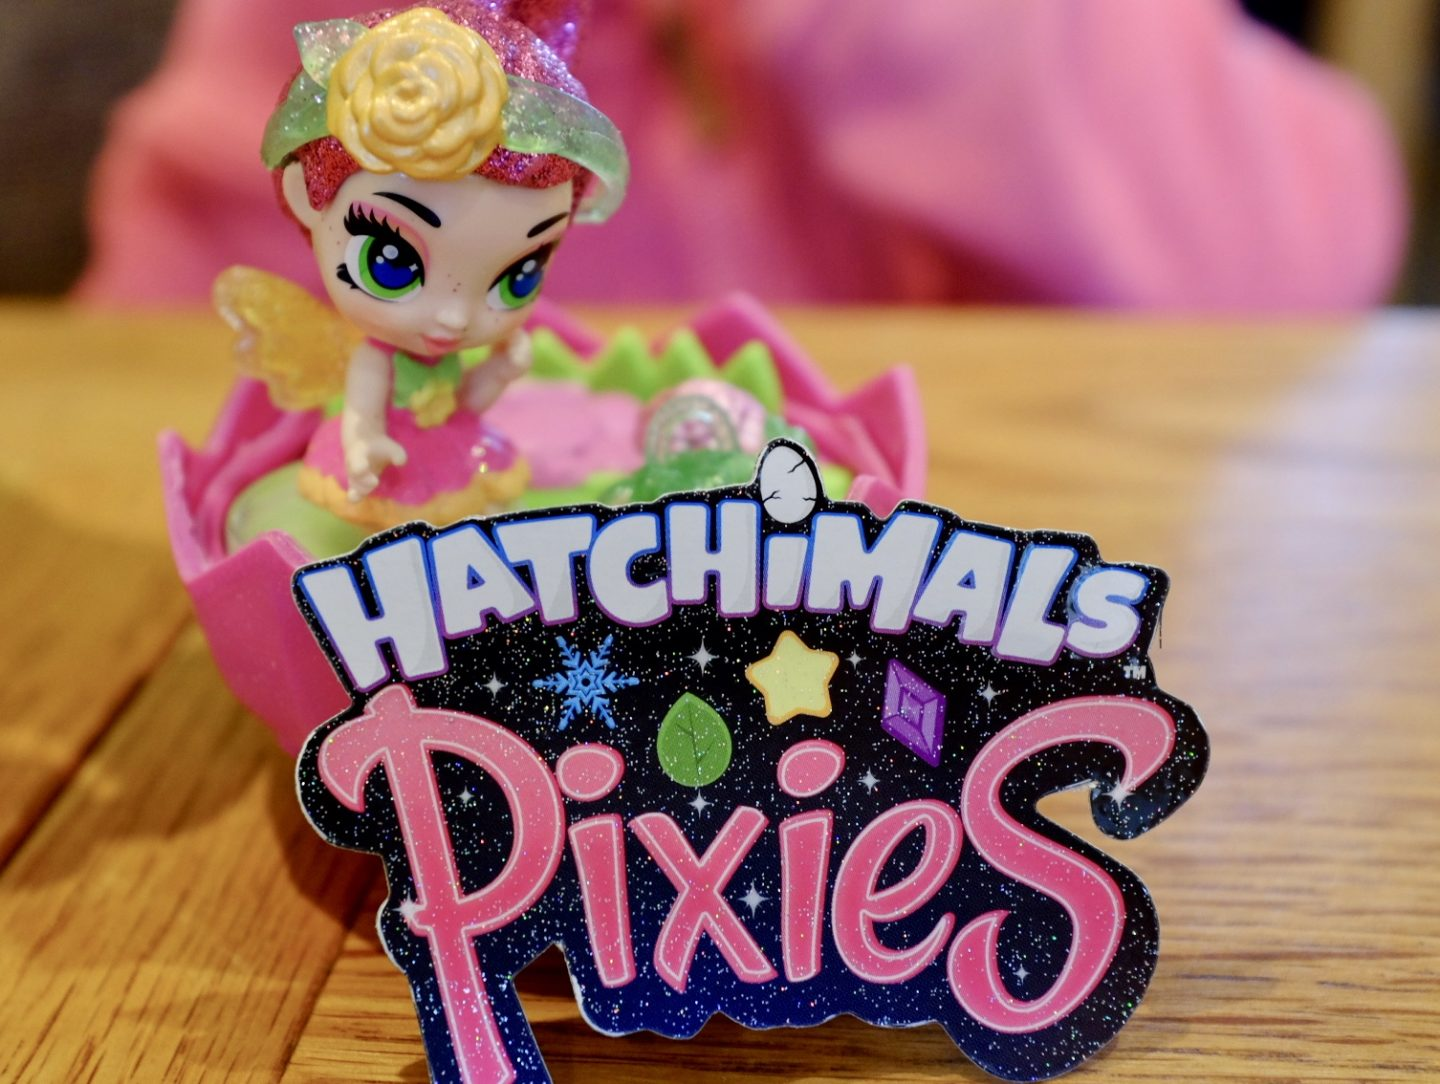 Hatchimals Pixies – REVIEW